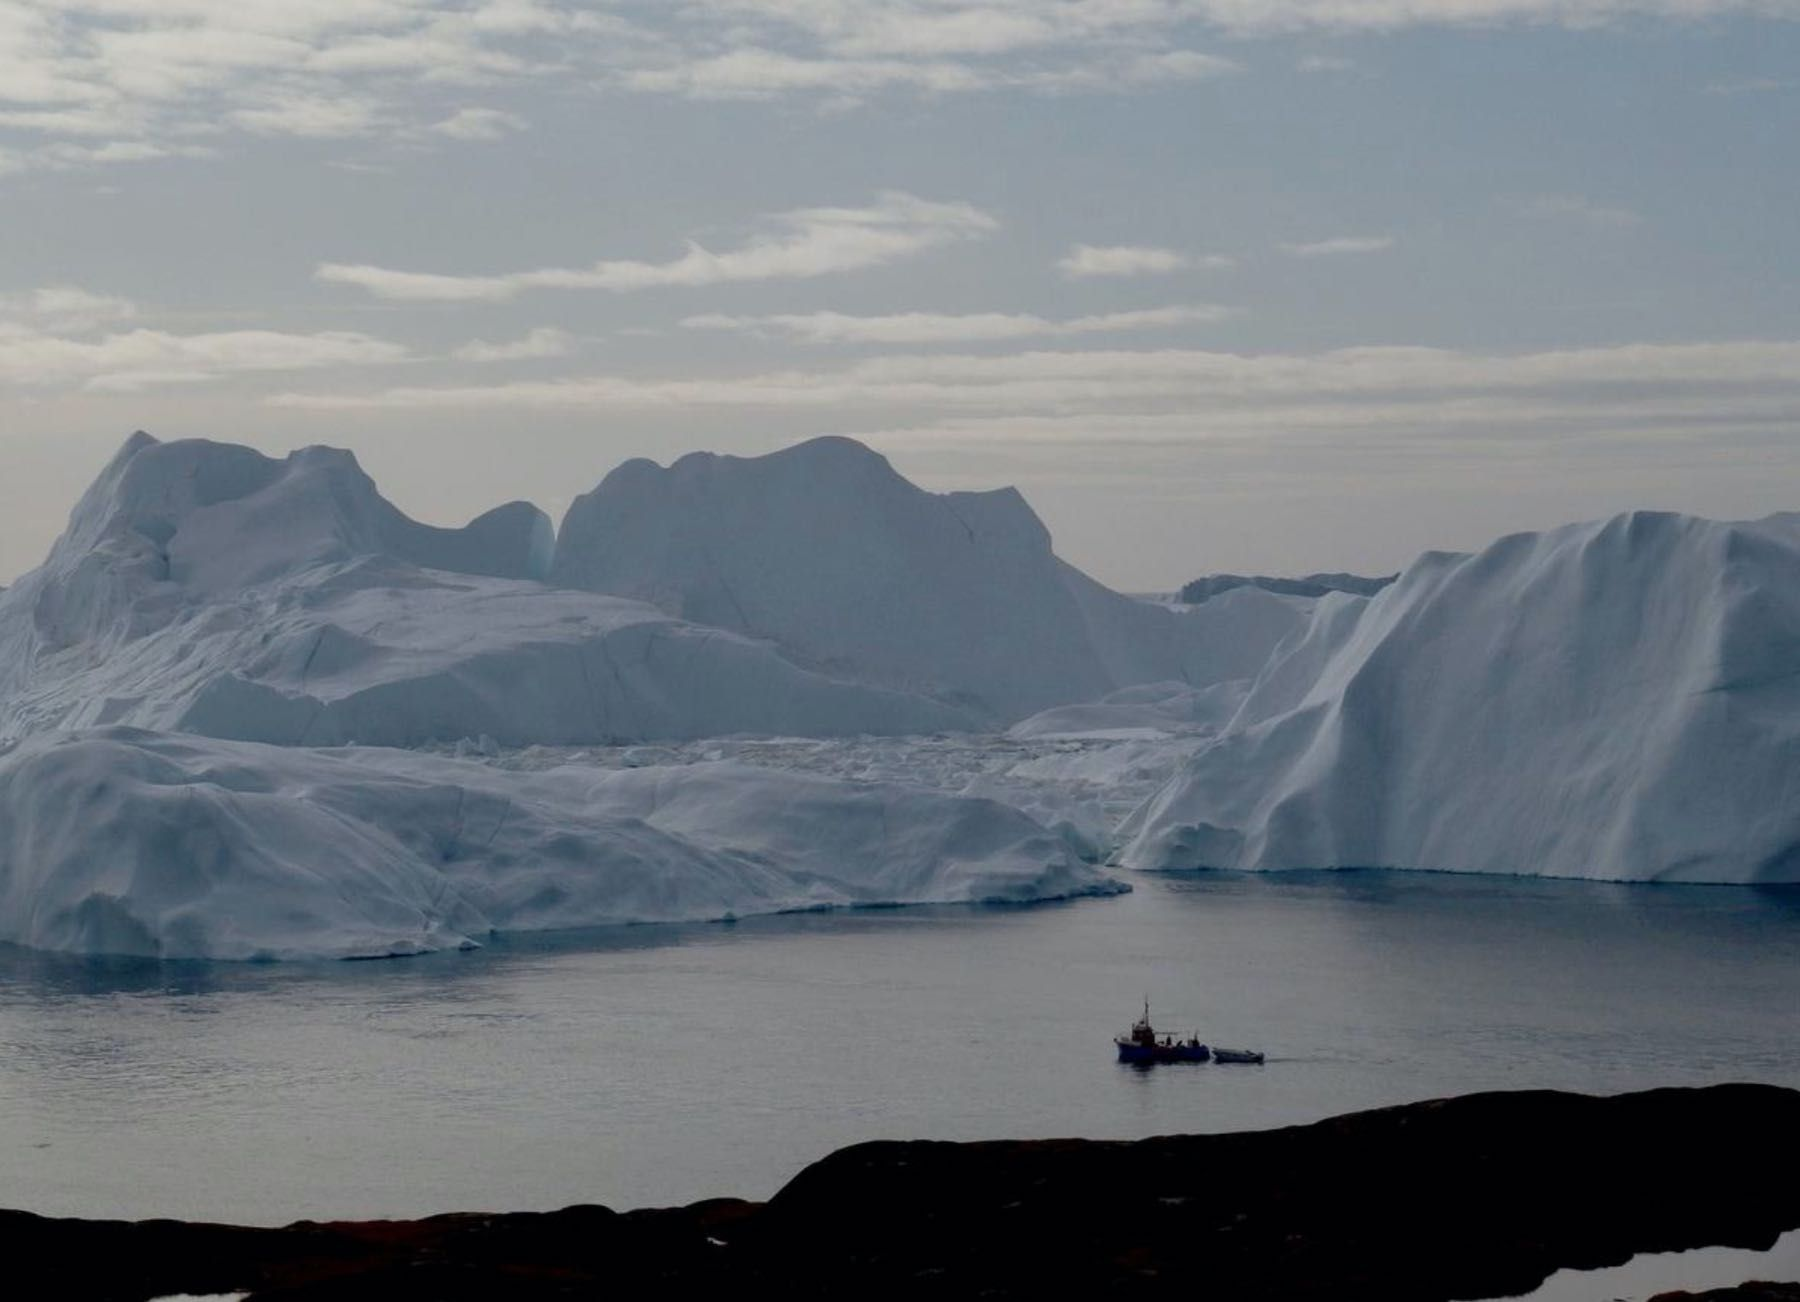 'Canary in the coal mine': Greenland ice has shrunk beyond return, study finds